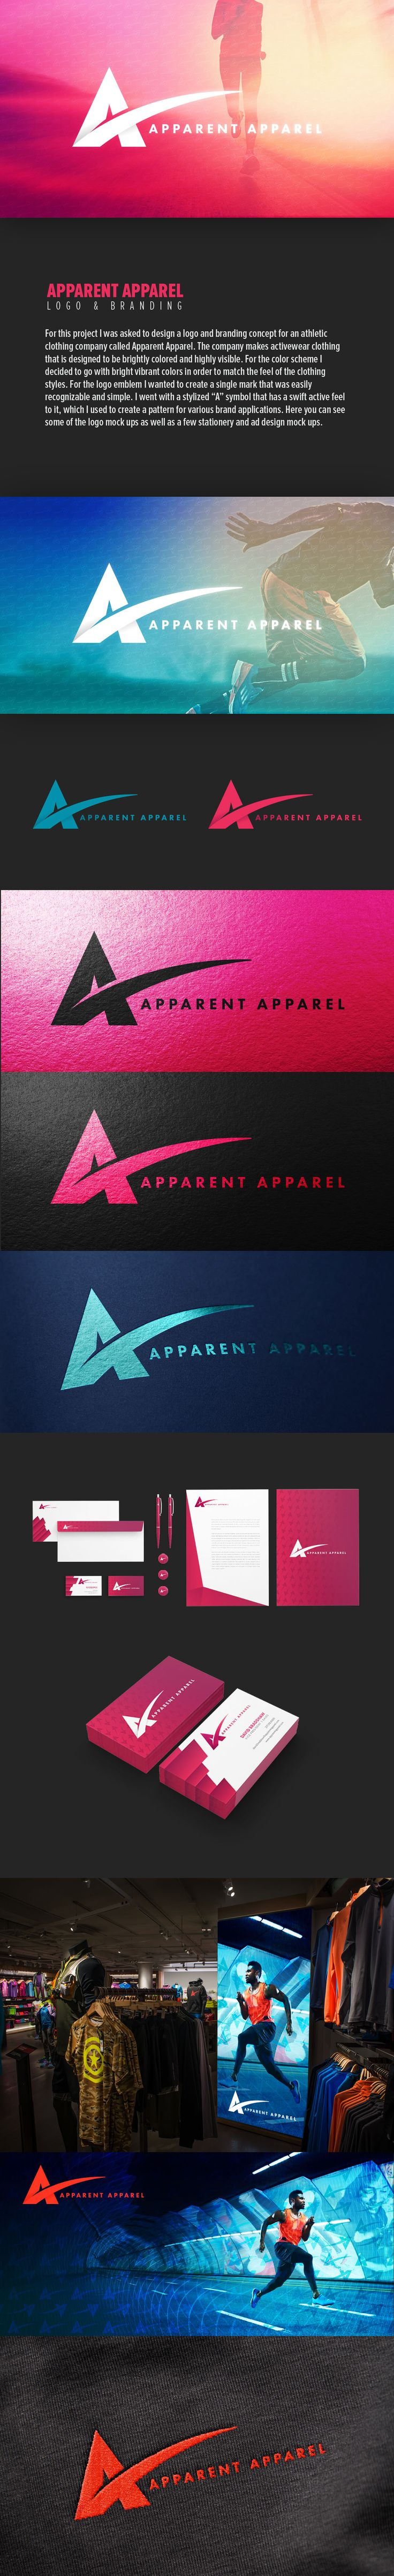 Apparent Apparel Logo & Branding on Behance                                                                                                                                                                                 Más